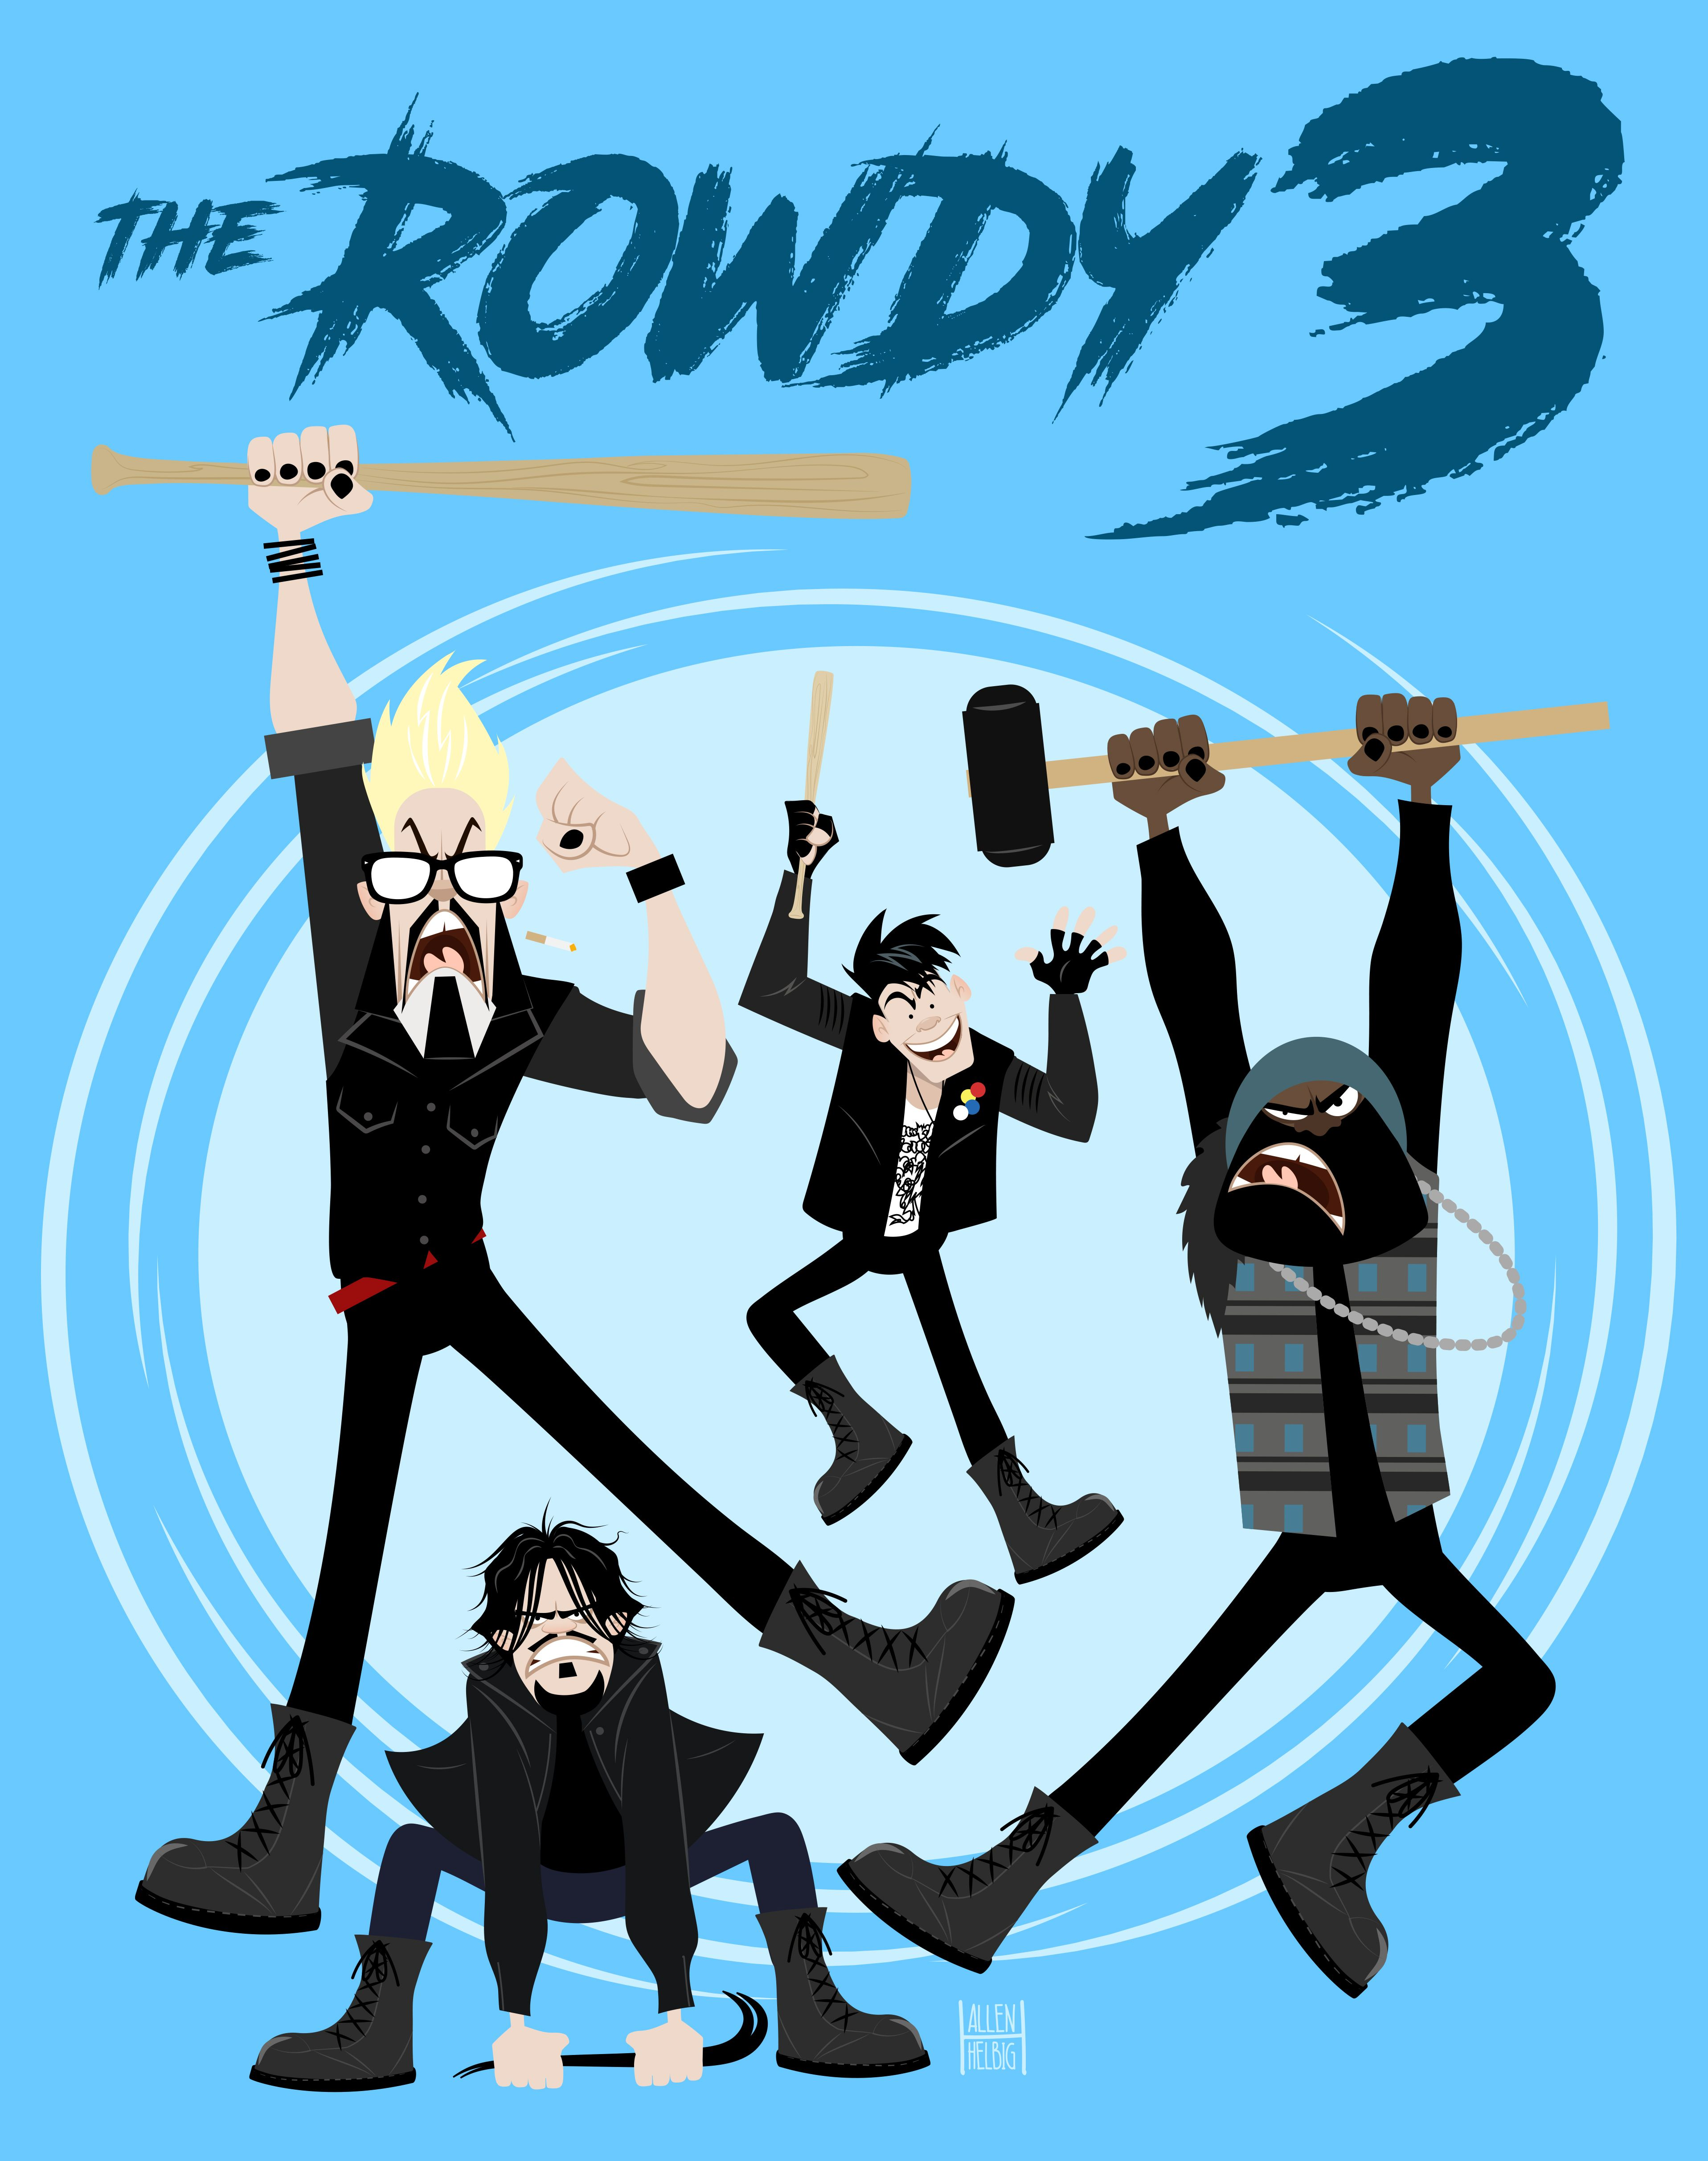 Dirk: The Rowdy 3! Let's Go! Todd: There Are Four Of Them